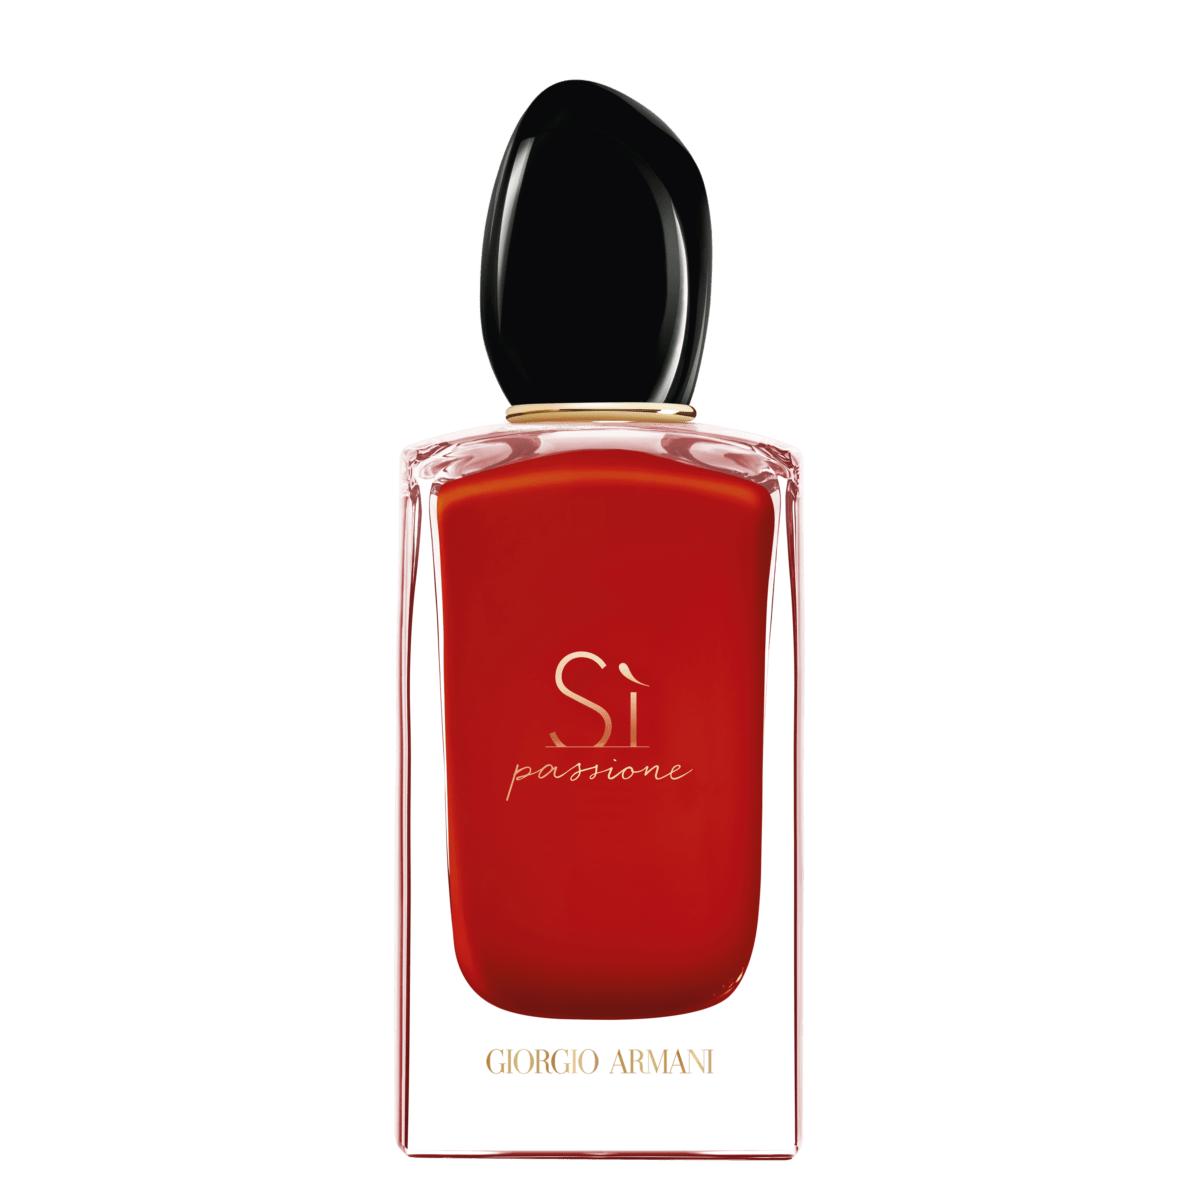 Giorgio Armani turns up the passion with latest Sì fragrance